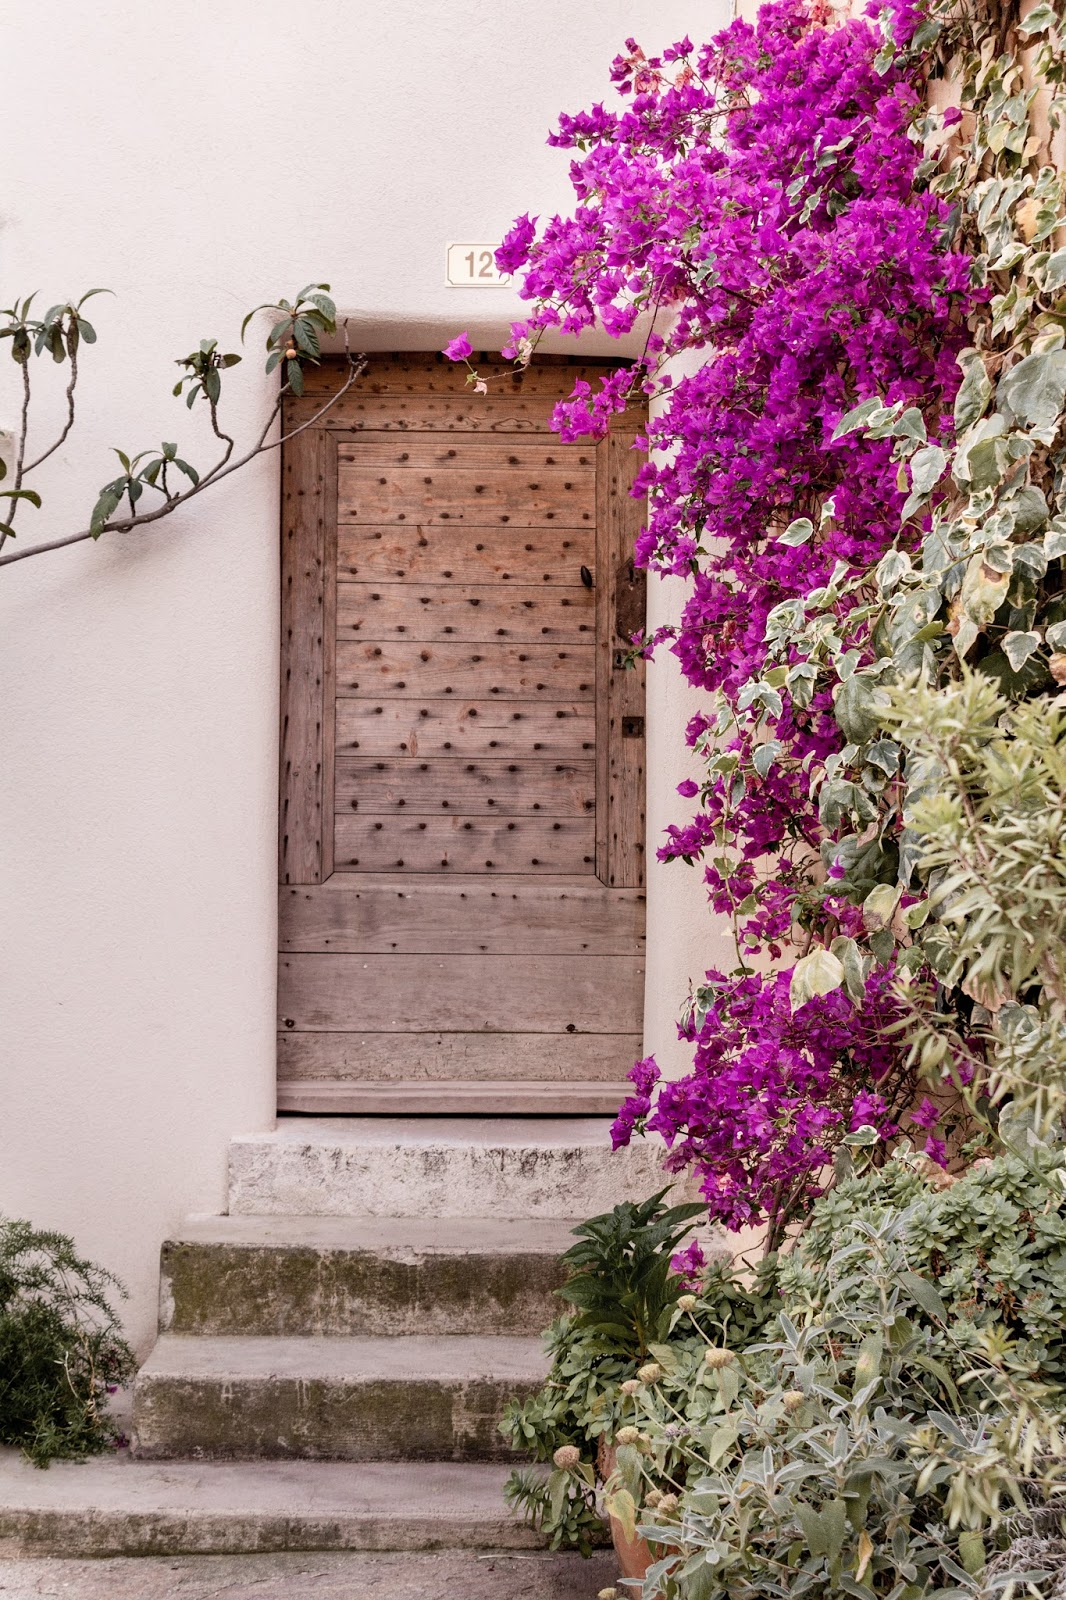 Rustic French Country Doors in Provence and gorgeous curb appeal with climbing vines, crumbling stone, and weathered age. Photo: The Flying Dutchwoman. #provence #southoffrance #exteriors #weathereddoors #rusticdoor #frenchcountryside #summerinfrance #frenchcountry #frenchfarmhouse #frontdoor #sttropez